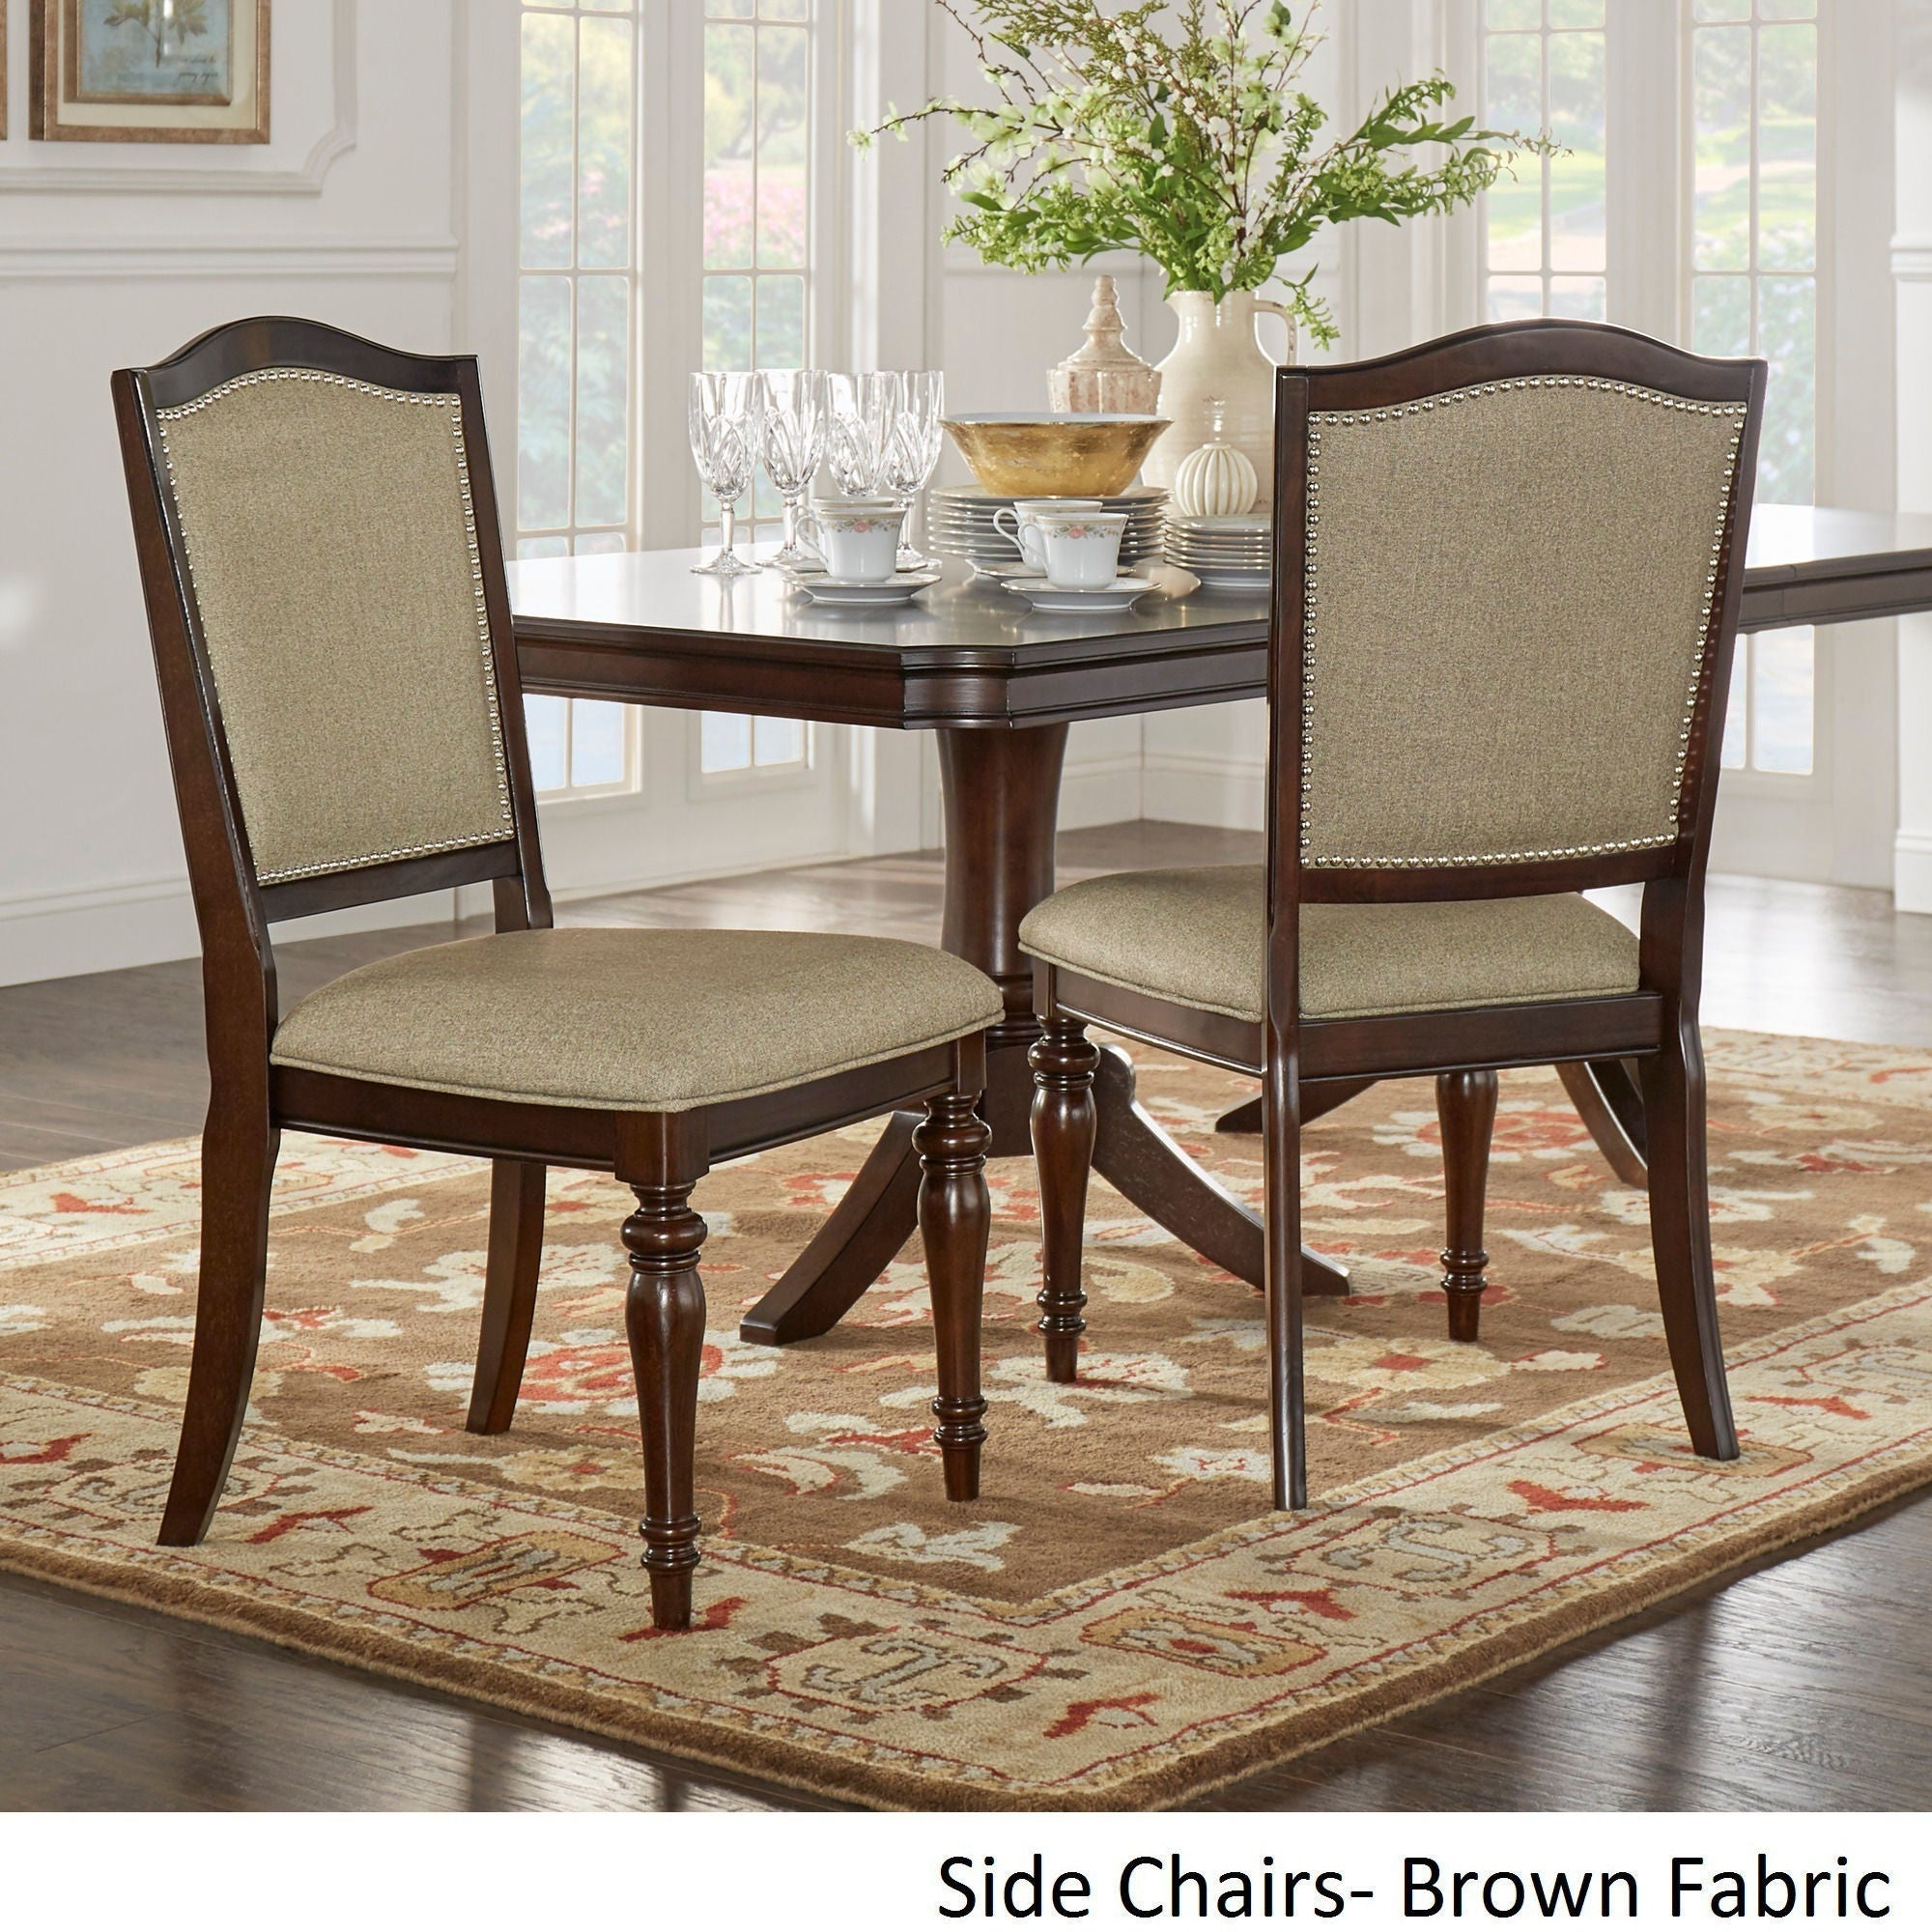 Lasalle Espresso Nail Head Accent Transitional Dining Side Chairs Set Of 2 By Inspire Q Clic Free Shipping Today 8753790